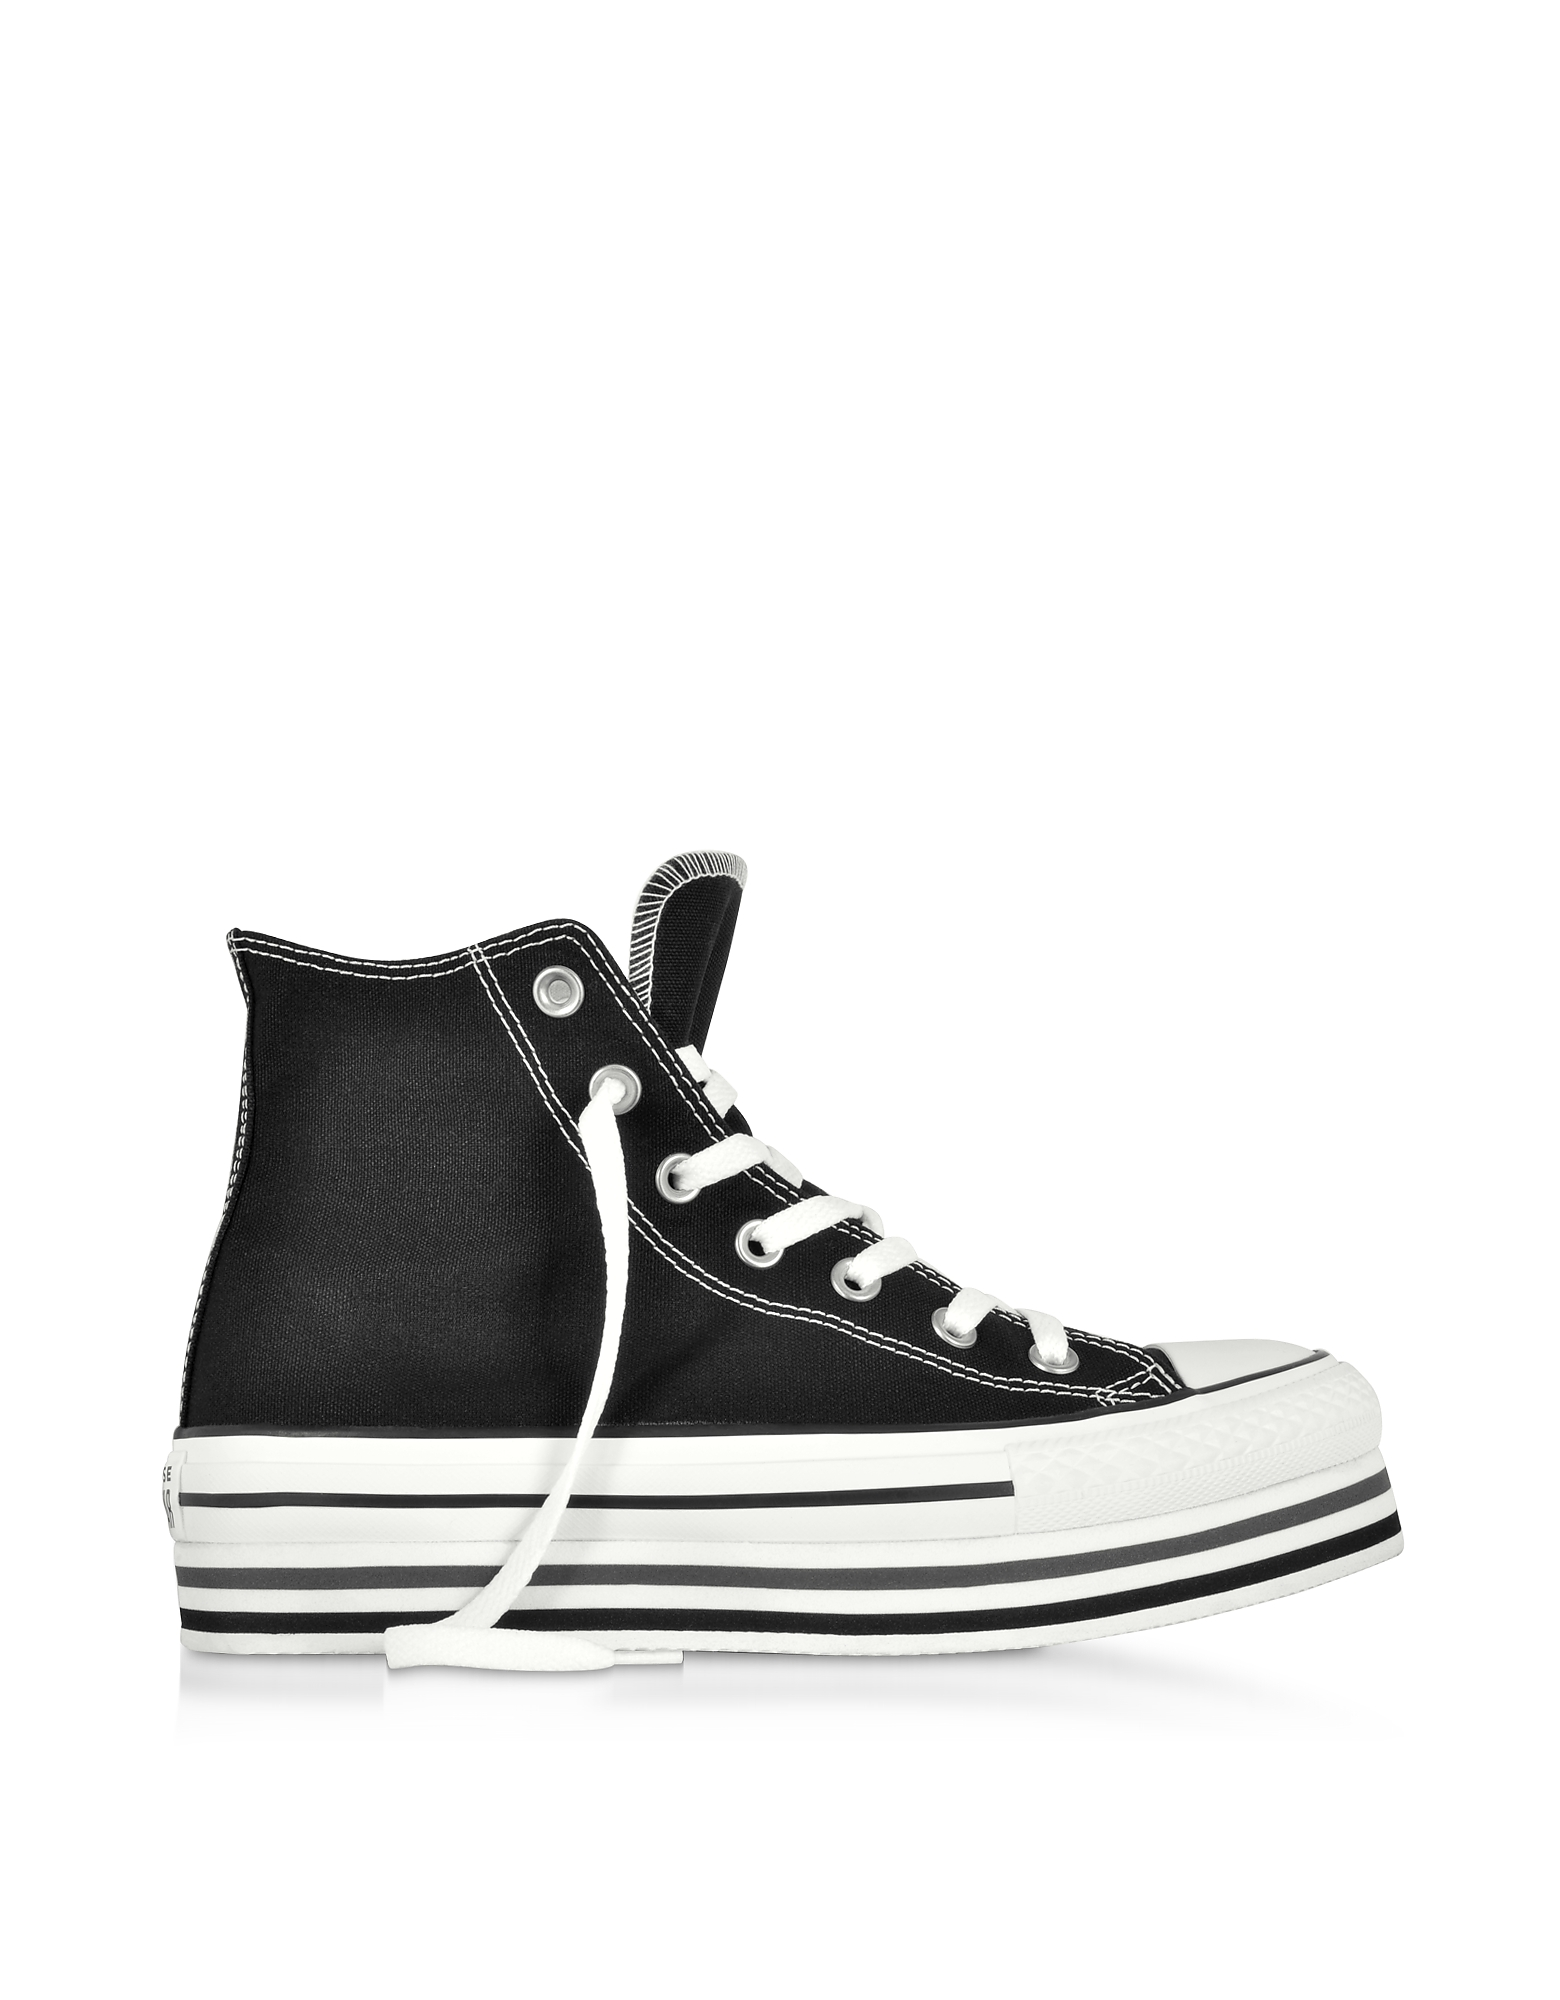 Converse Limited Edition Designer Shoes, Chuck Taylor All Star Platform Layer Black Sneakers